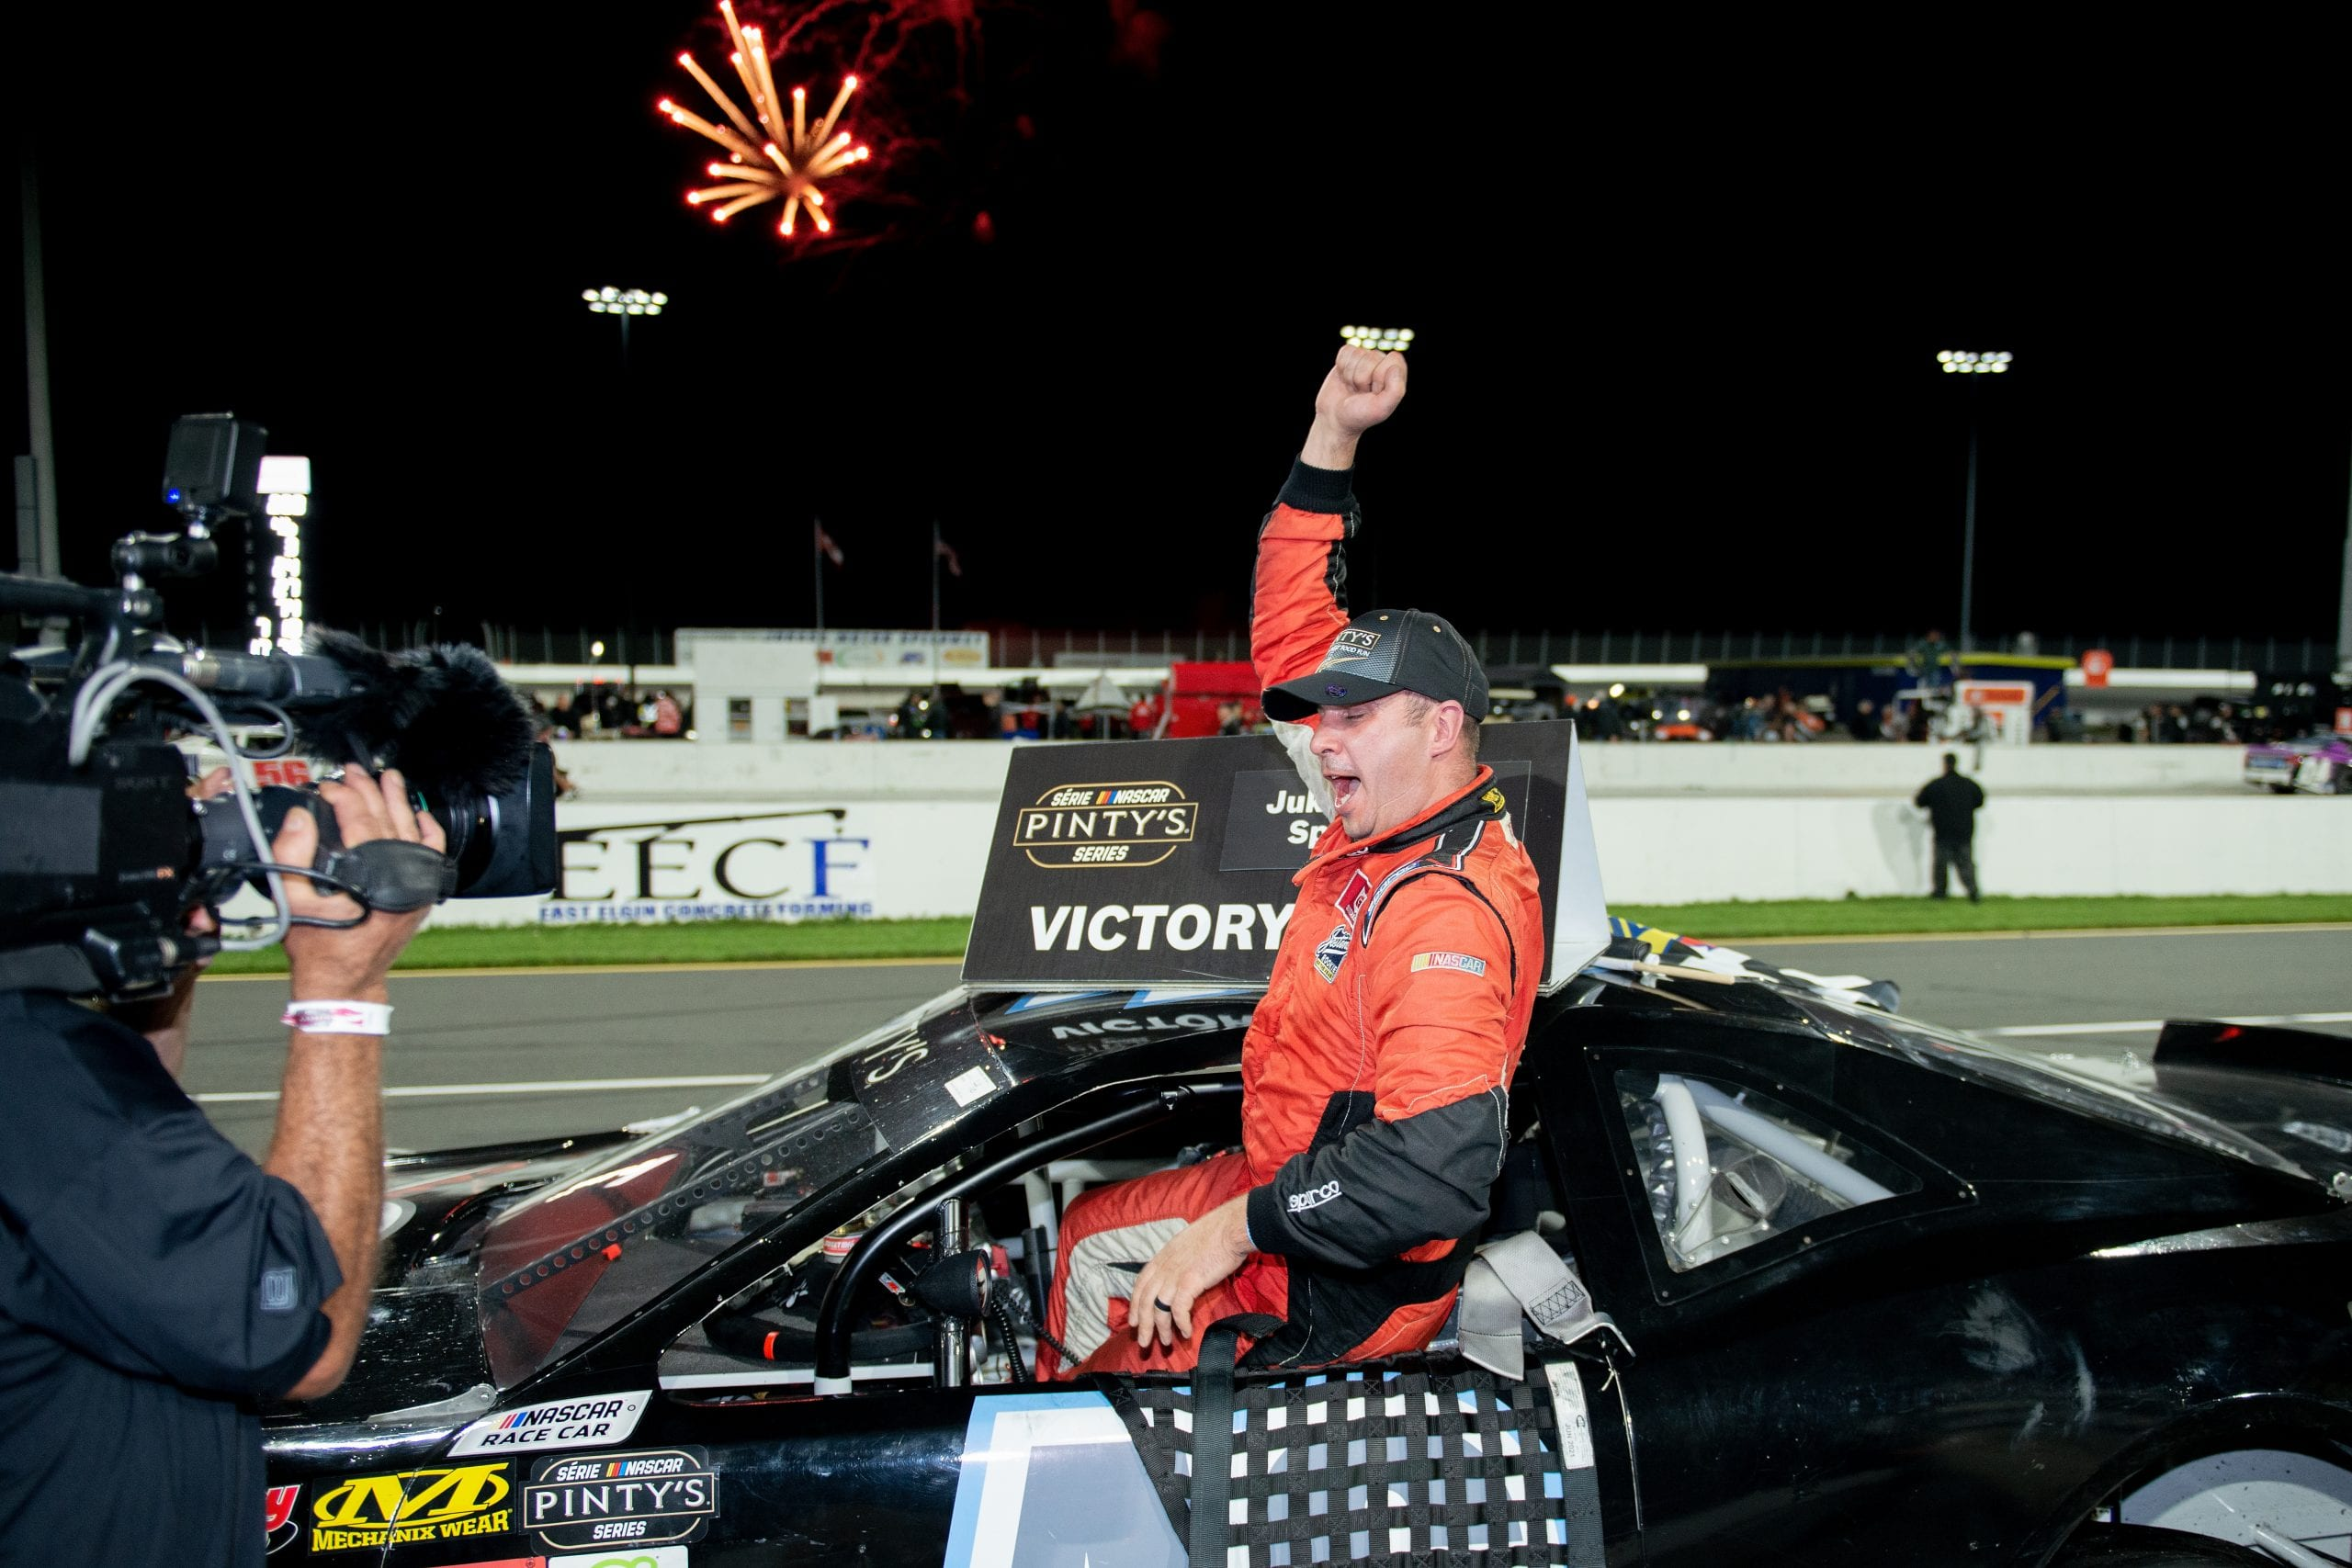 NELLES CORNERS, ON - Seot 28 2019: Brett Taylor, driver of the #46 Dodge wins the Pinty's Fall Brawl at Jukasa Motor Speedway on Sep 28, 2019 in Nelles Corners, Ontario, Canada. (Photo by Matthew Murnaghan/NASCAR)